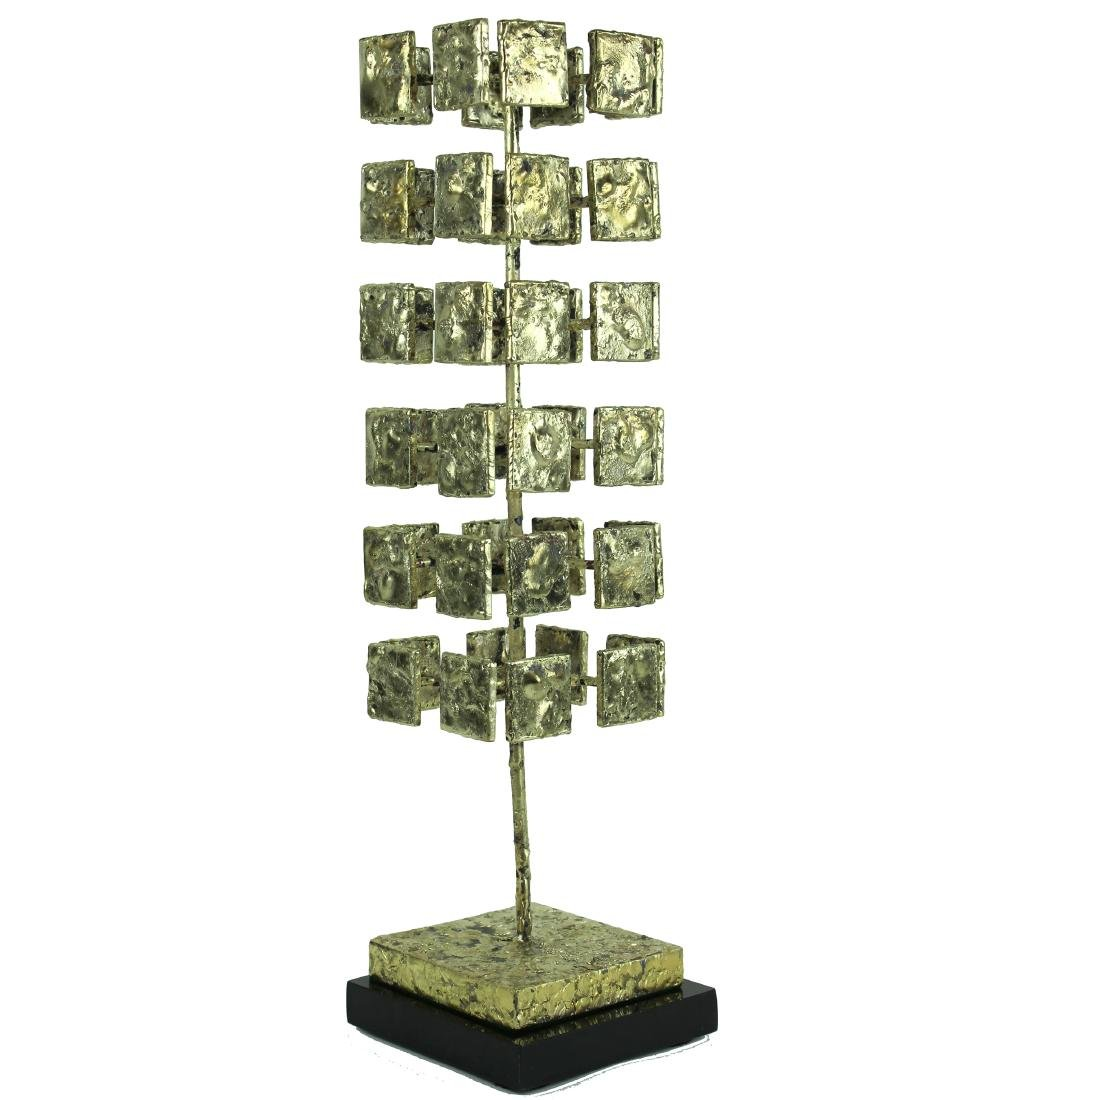 MODERN, CUBE, 3-D GILT BRONZE SCULPTURE